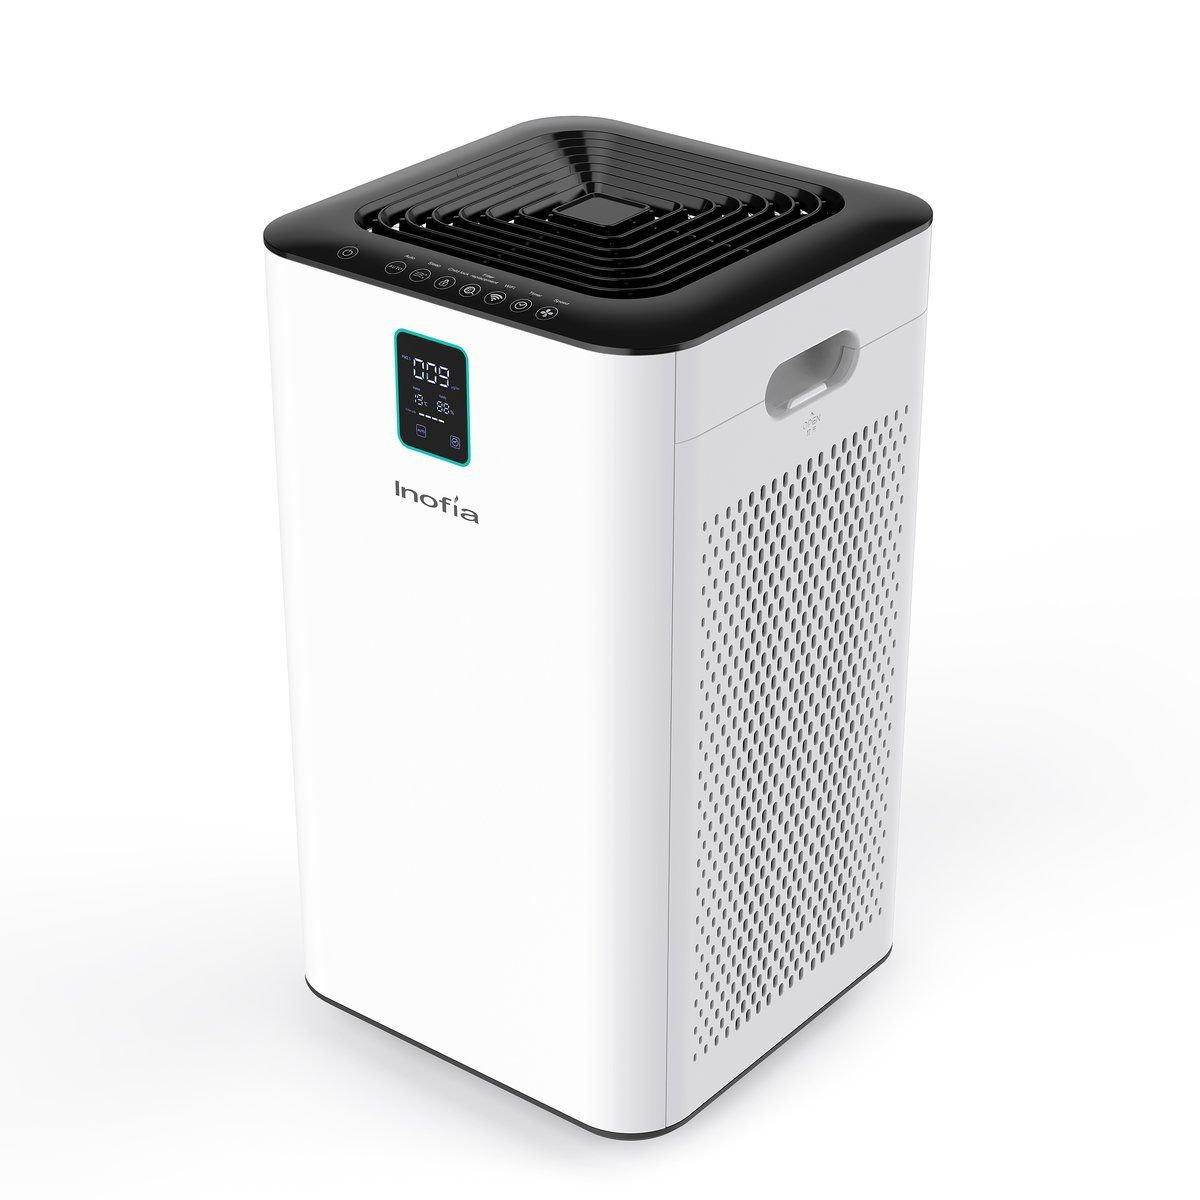 Inofia True Hepa Air Purifier With 2 Filters For Pet Dust Smoke Allergens Air Purifier Hepa Air Purifier Filter Air Purifier